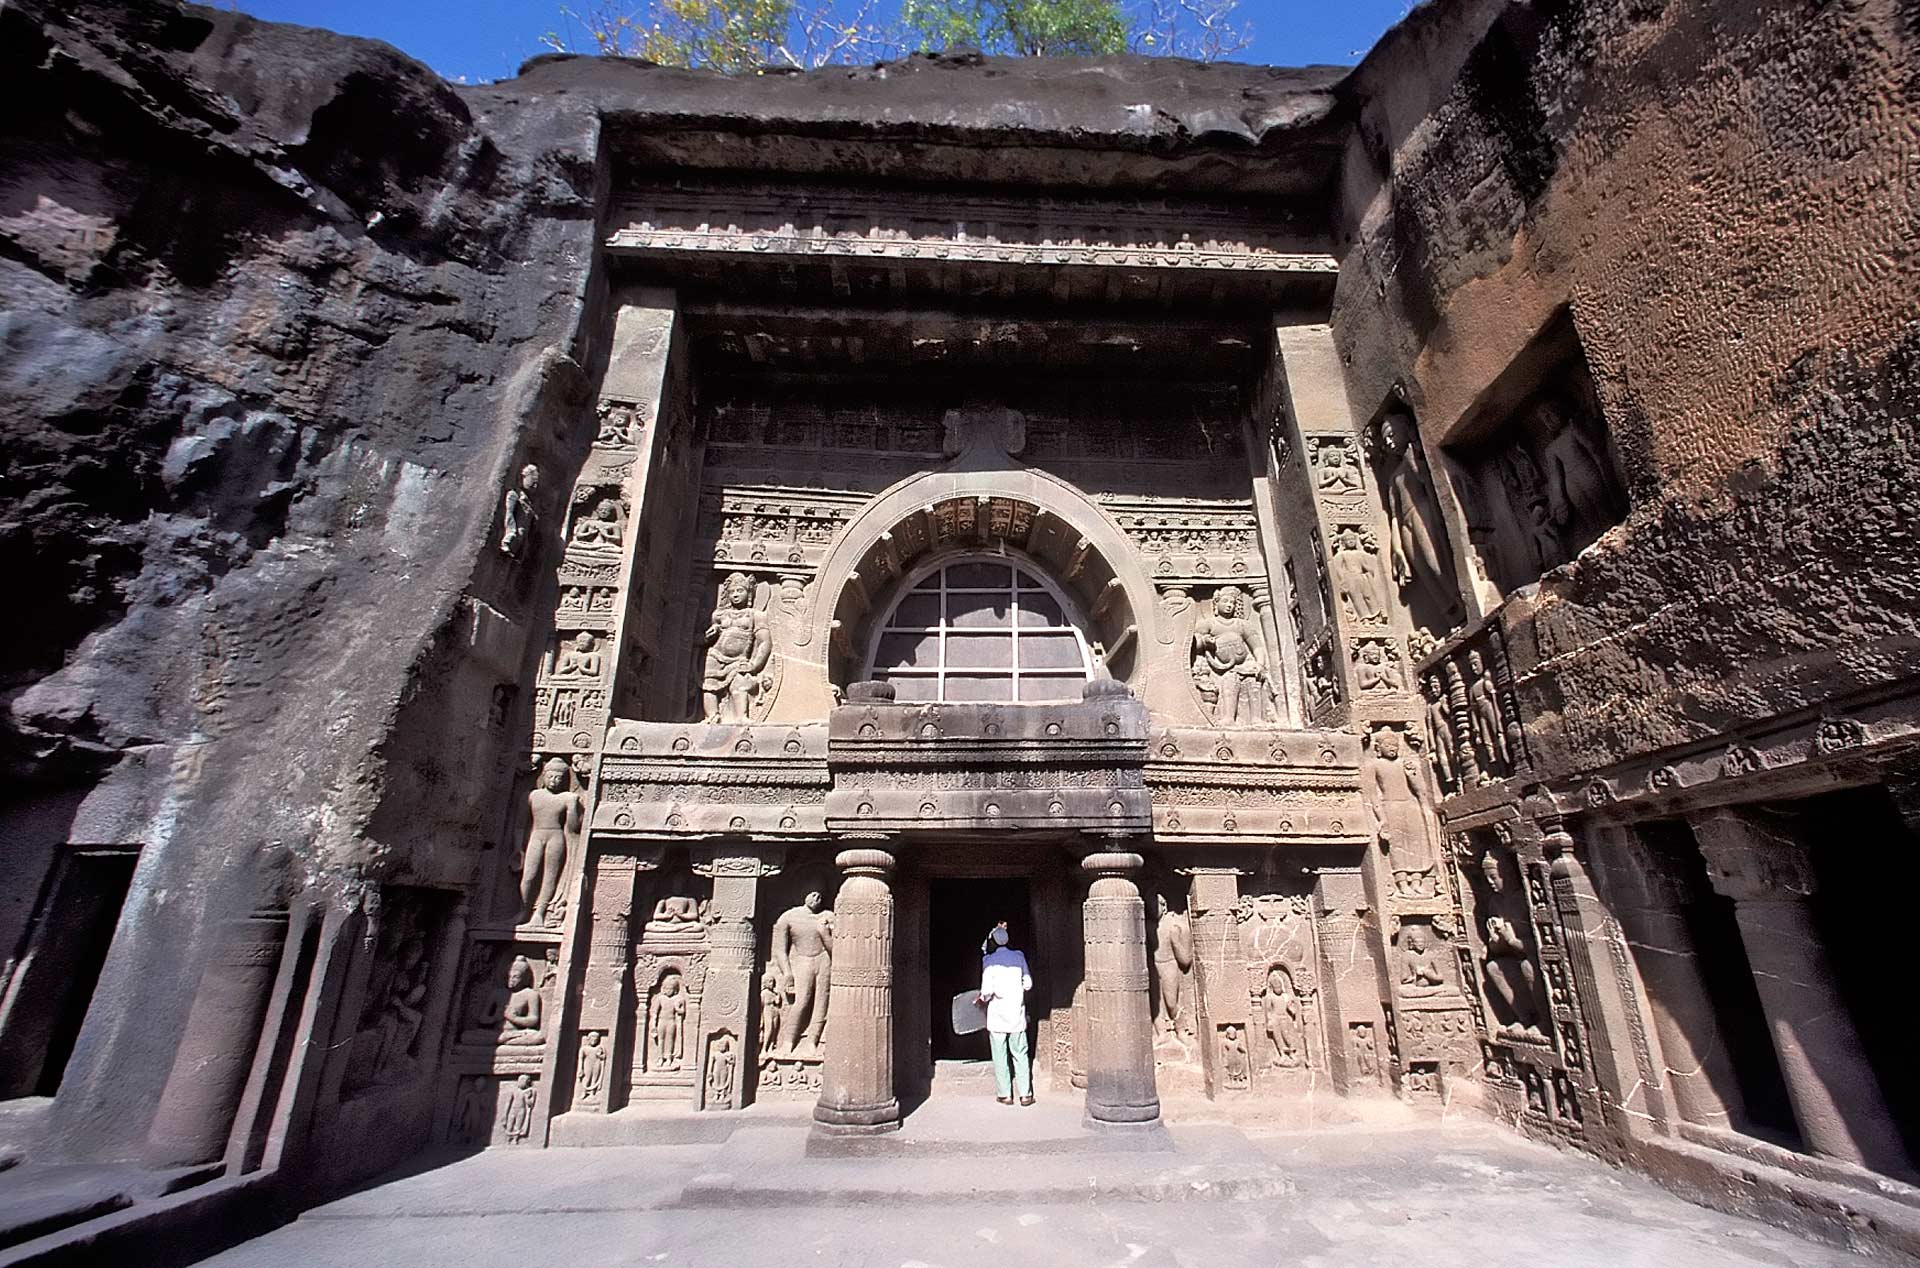 Cave 19, Ajanta Caves, Maharashtra, India